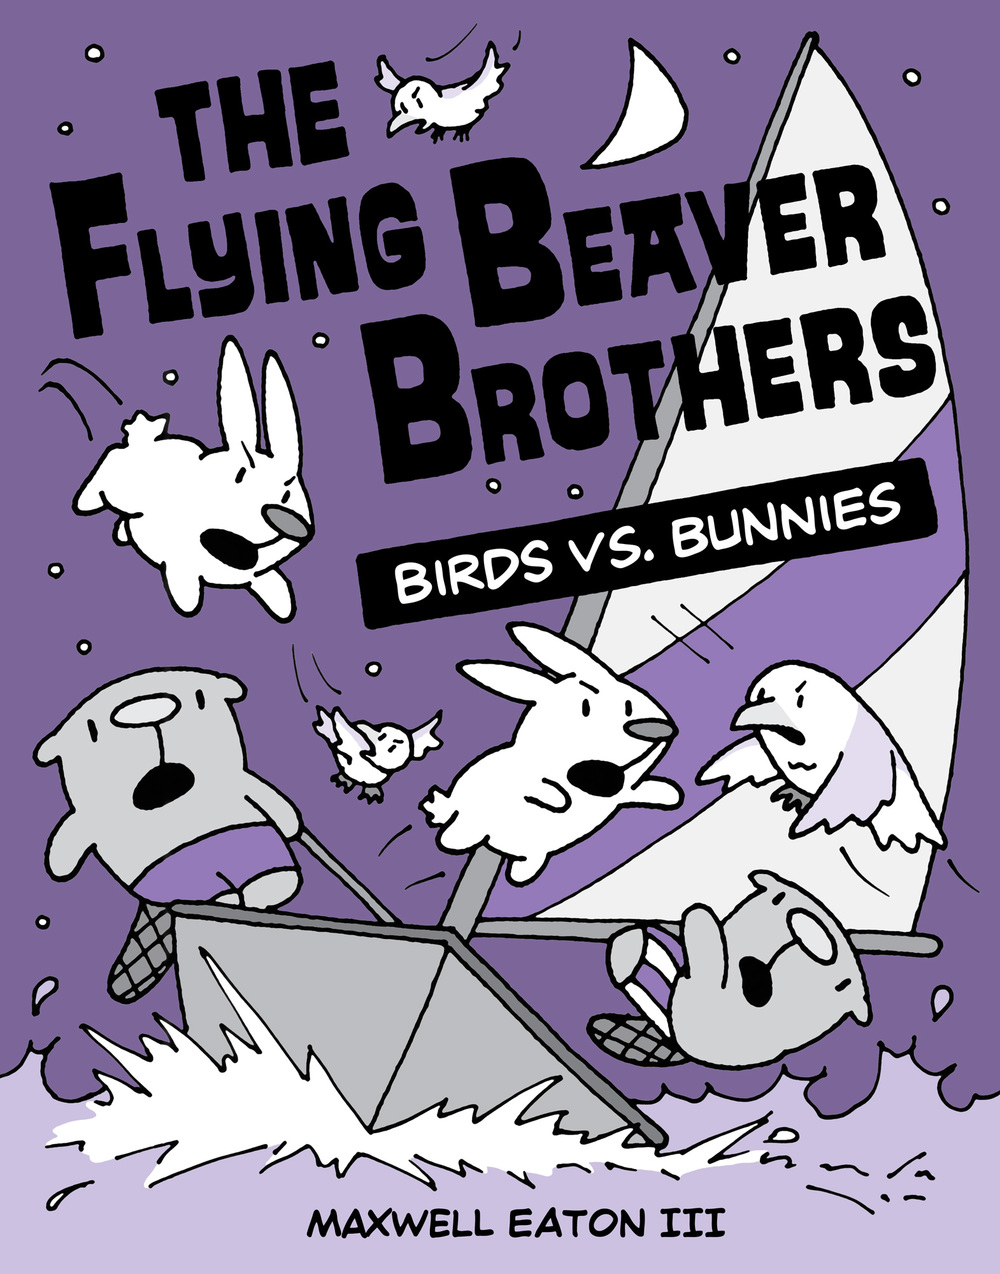 Maxwell-Eaton-III-The-Flying-Beaver-Brothers-Birds-vs-Bunnies.jpg